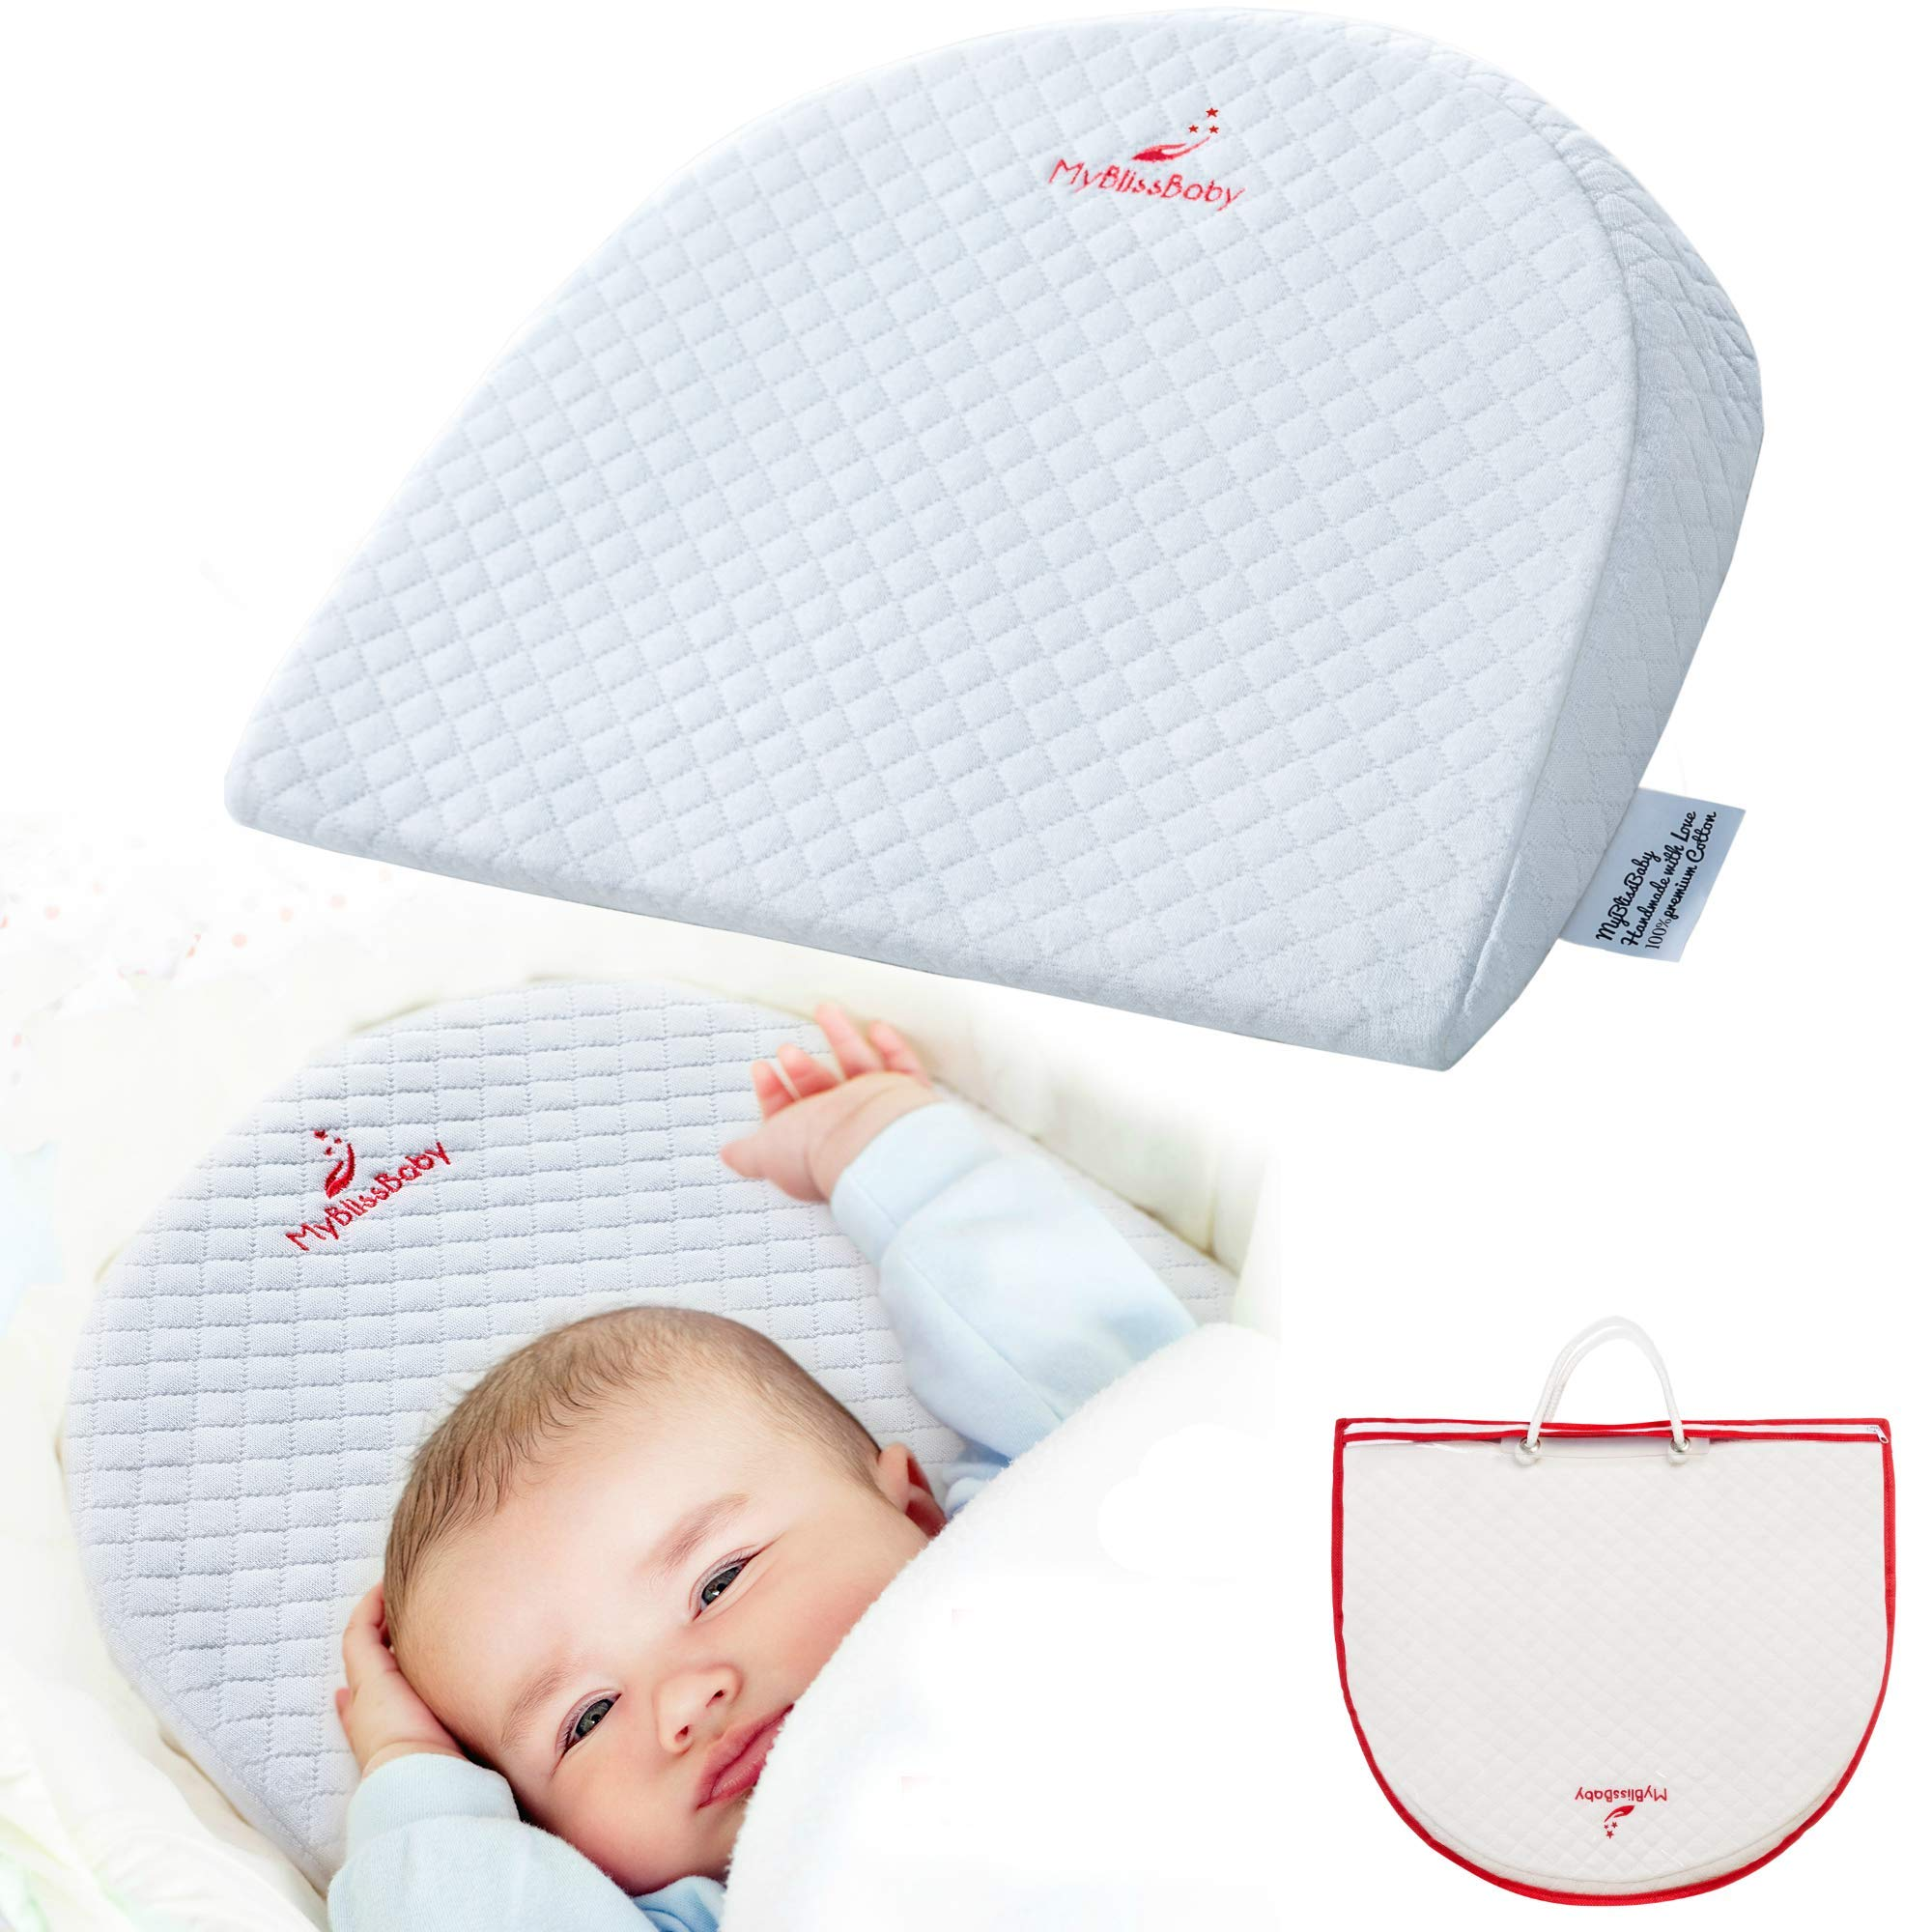 Baby Bassinet Wedge for Acid Reflux Relief Better Sleep Infant Incline Positioner Newborn Sleeping Pillow with Cotton Waterproof Removable Cover and 3 EBooks by MyBlissBaby